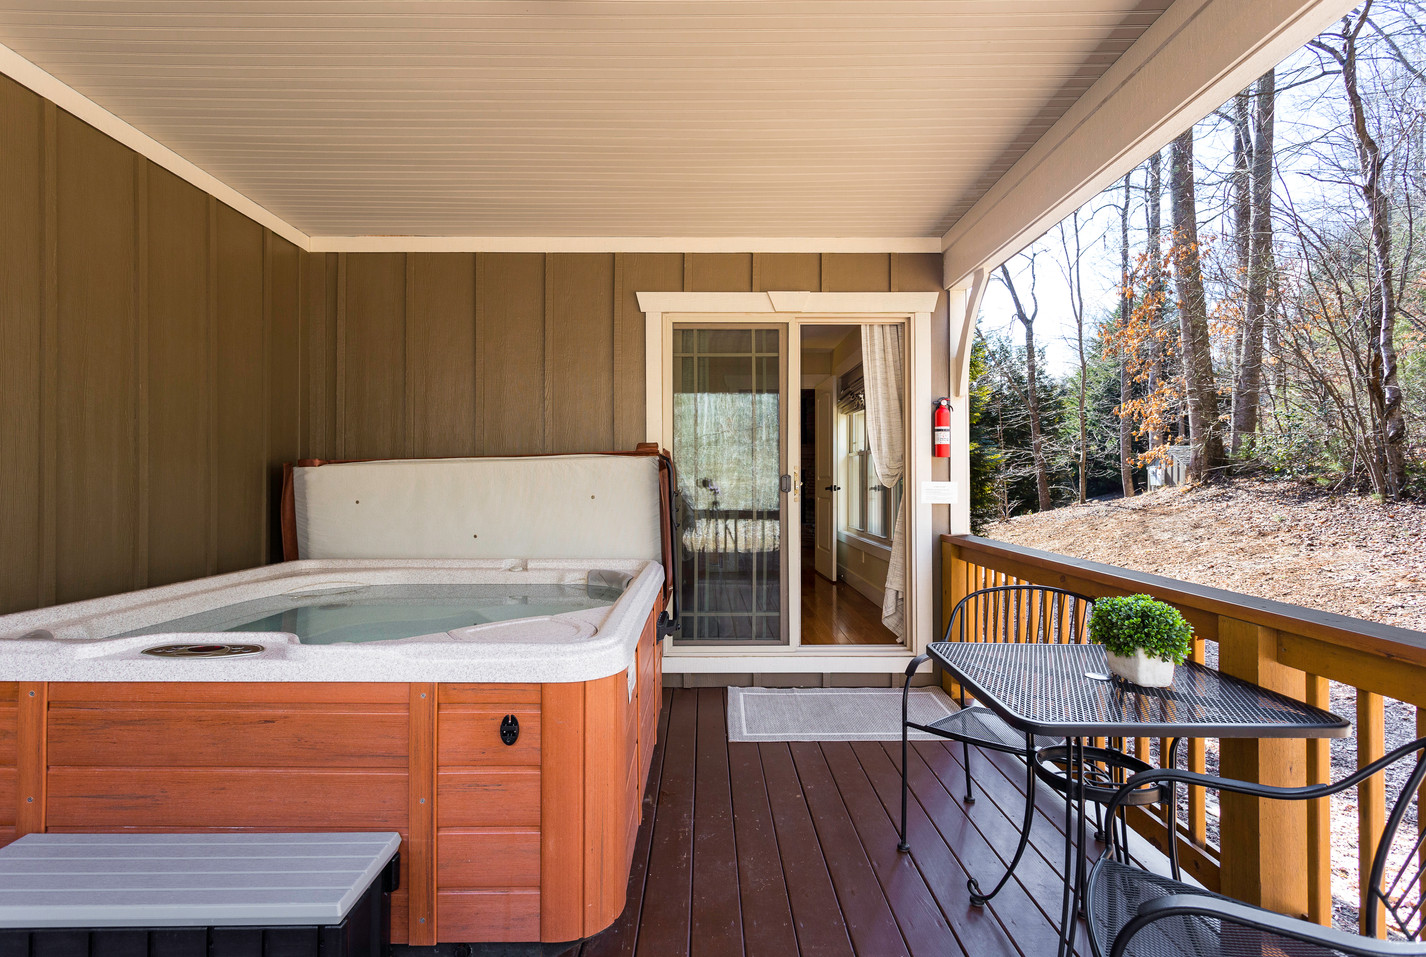 Hot tub and gas grill